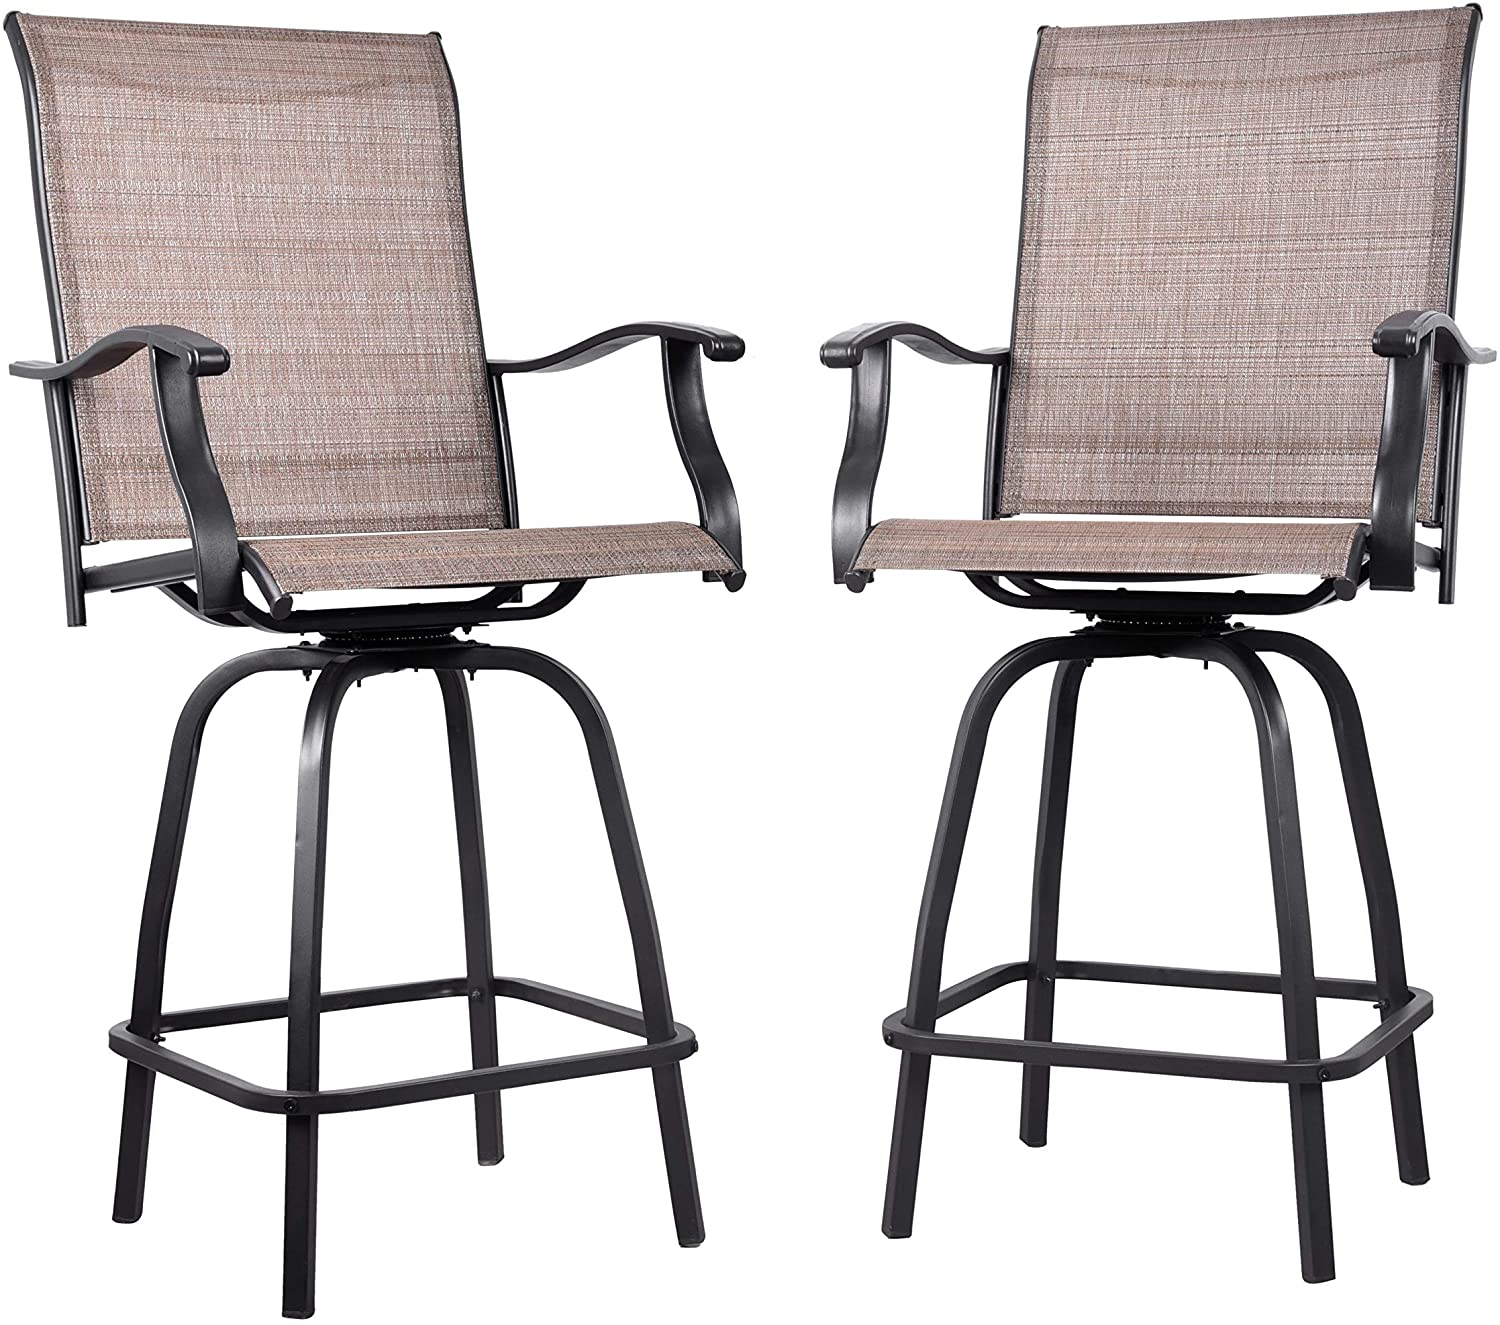 EMERIT Outdoor Swivel Bar Stools Bar Height Patio Chairs, Set of 9 (Bar  Stools)